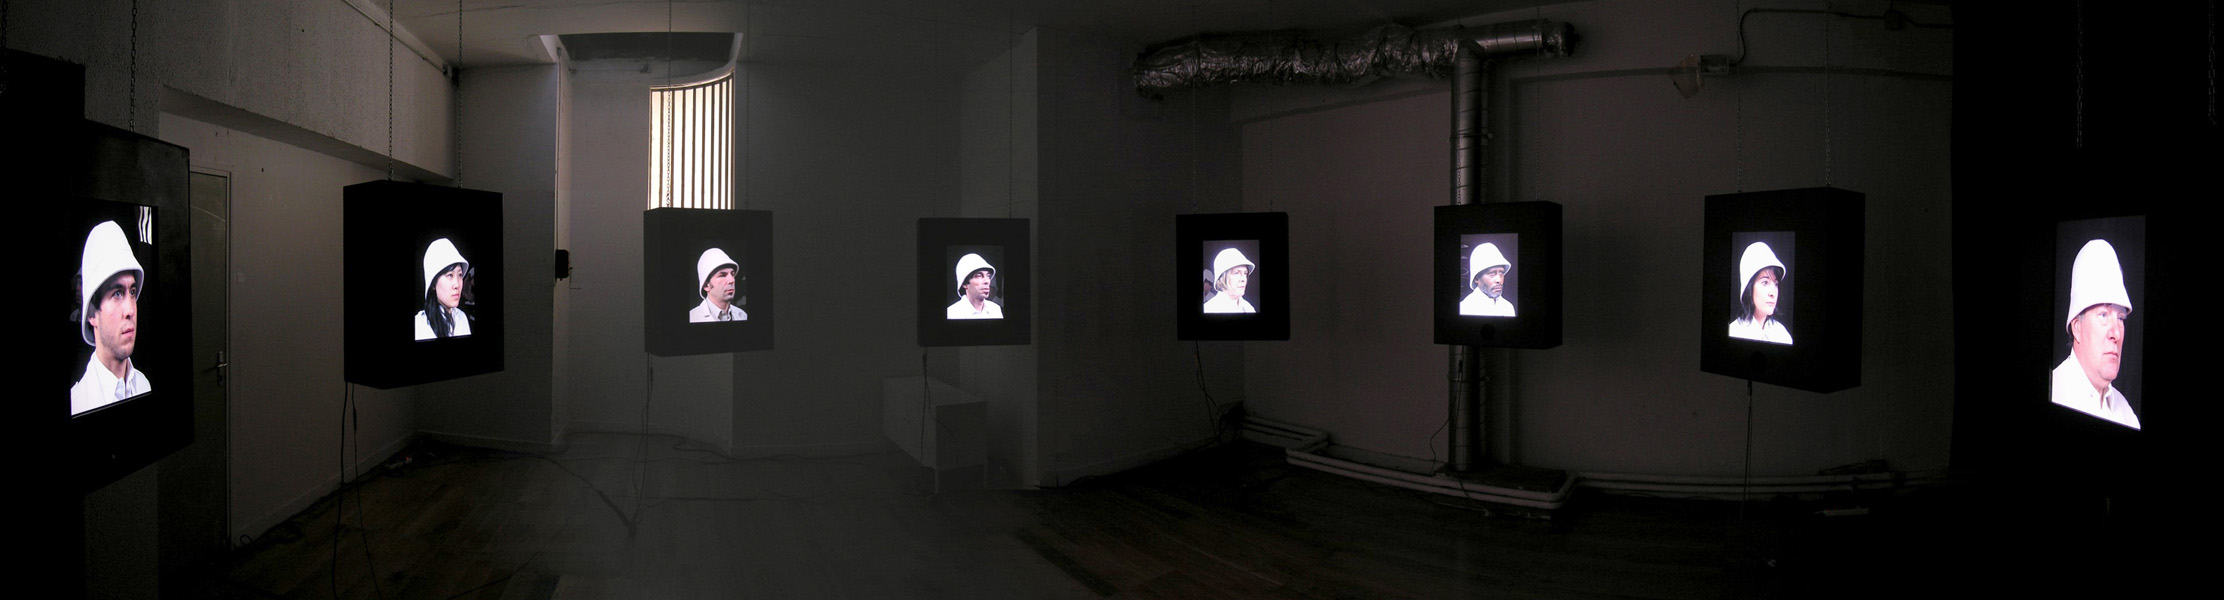 http://julienpelletier.fr/files/gimgs/4_alter-mundi-installation.jpg